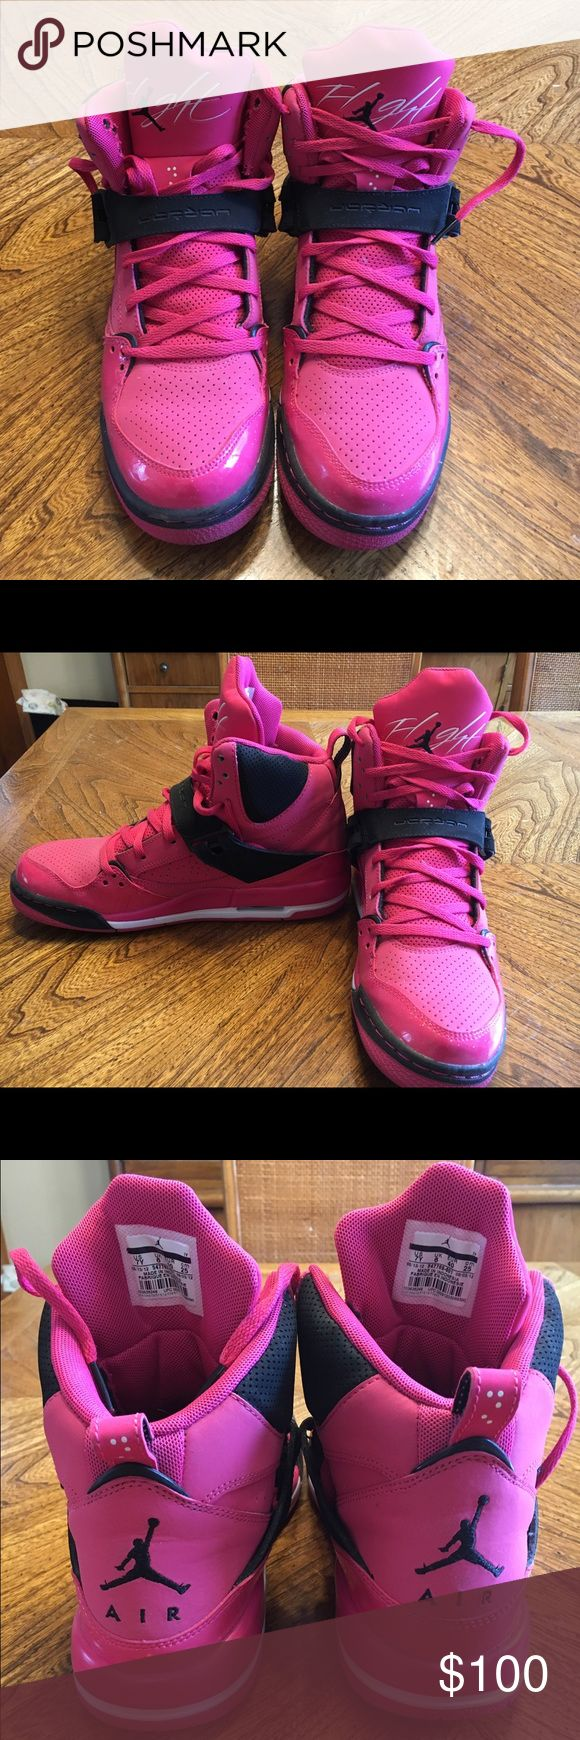 Rare Jordan True Flight 45 Vivid Pink High Tops Worn once!!!! Perfect shape...size 7Y which is a woman's 9 (I wear 8.5 and they fit good tho) Jordan Shoes Athletic Shoes